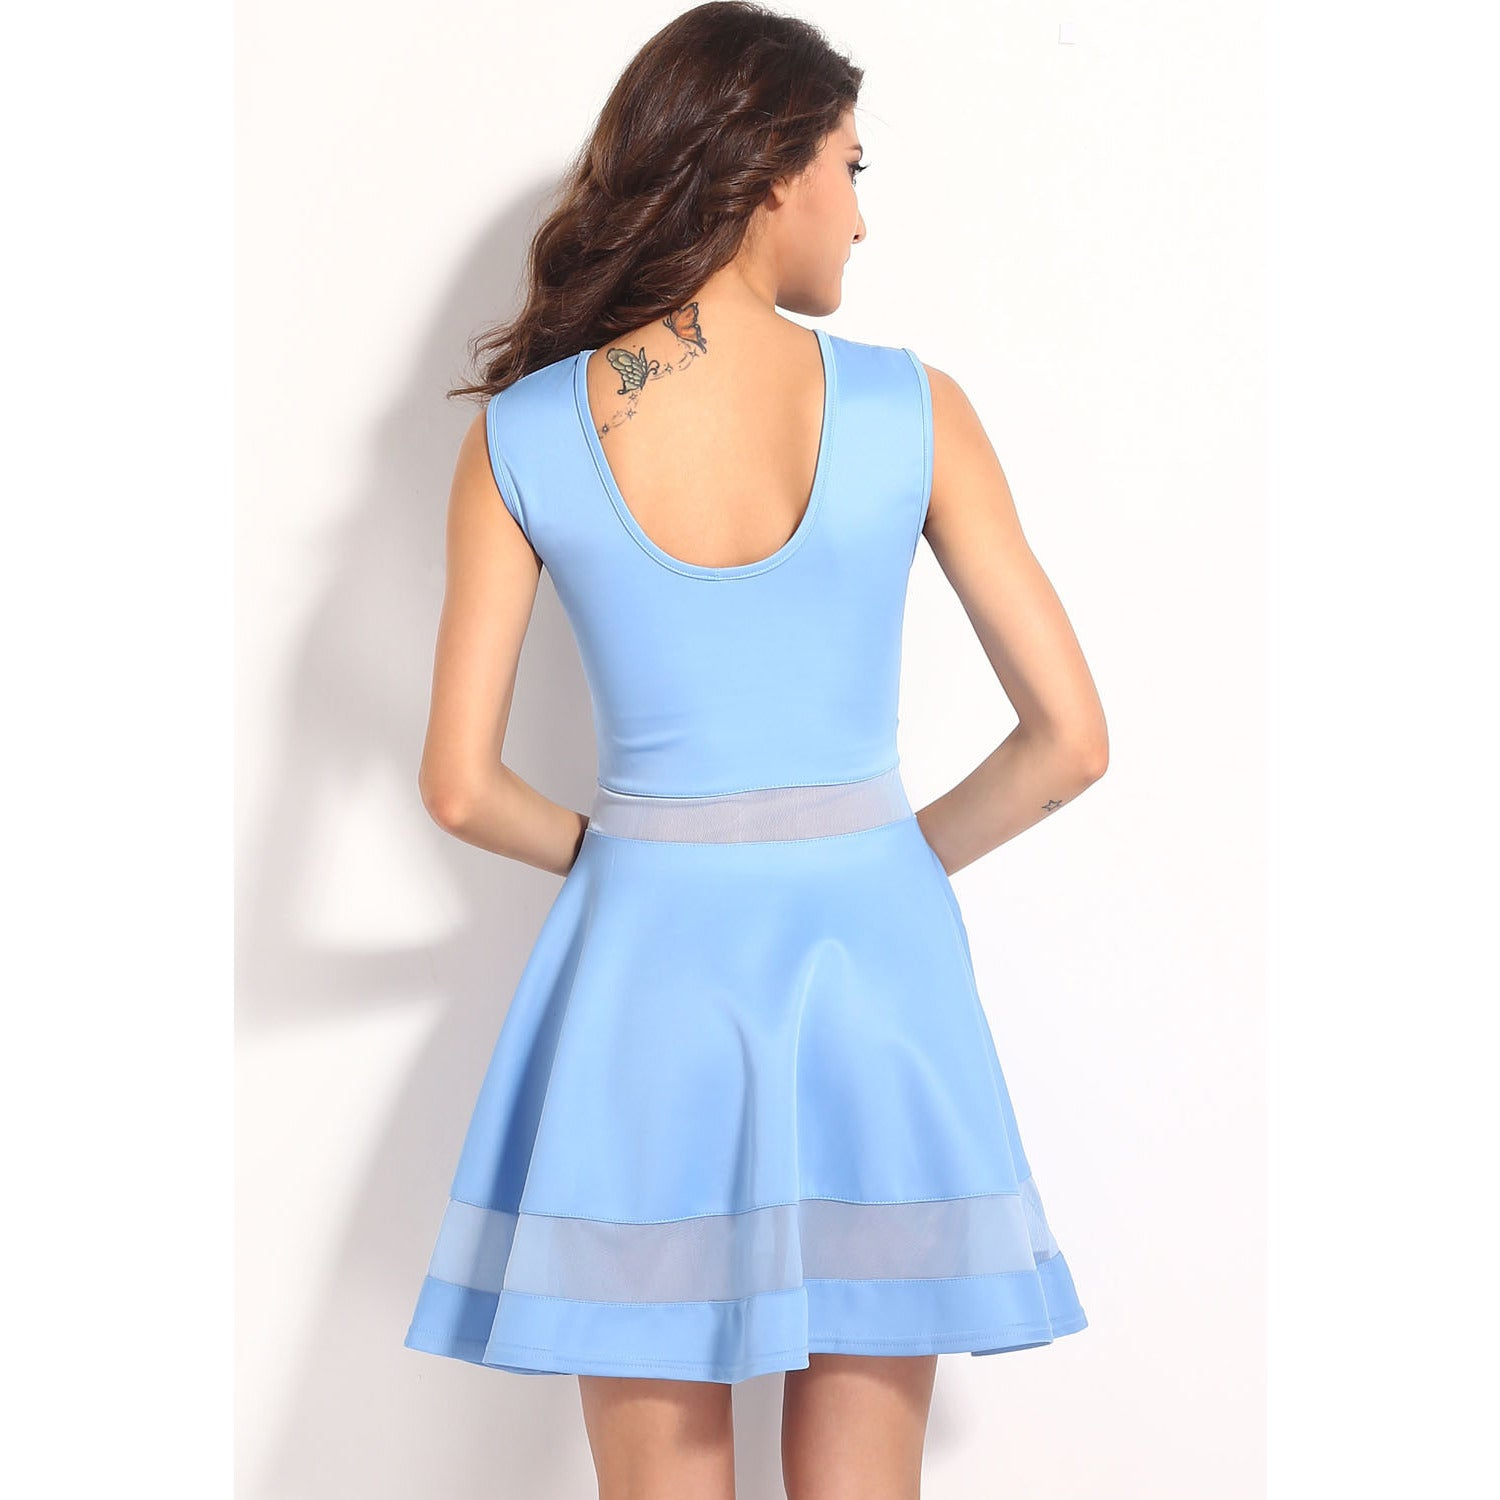 Light Blue Fitting Skater Dress Sale LAVELIQ - LAVELIQ - 4